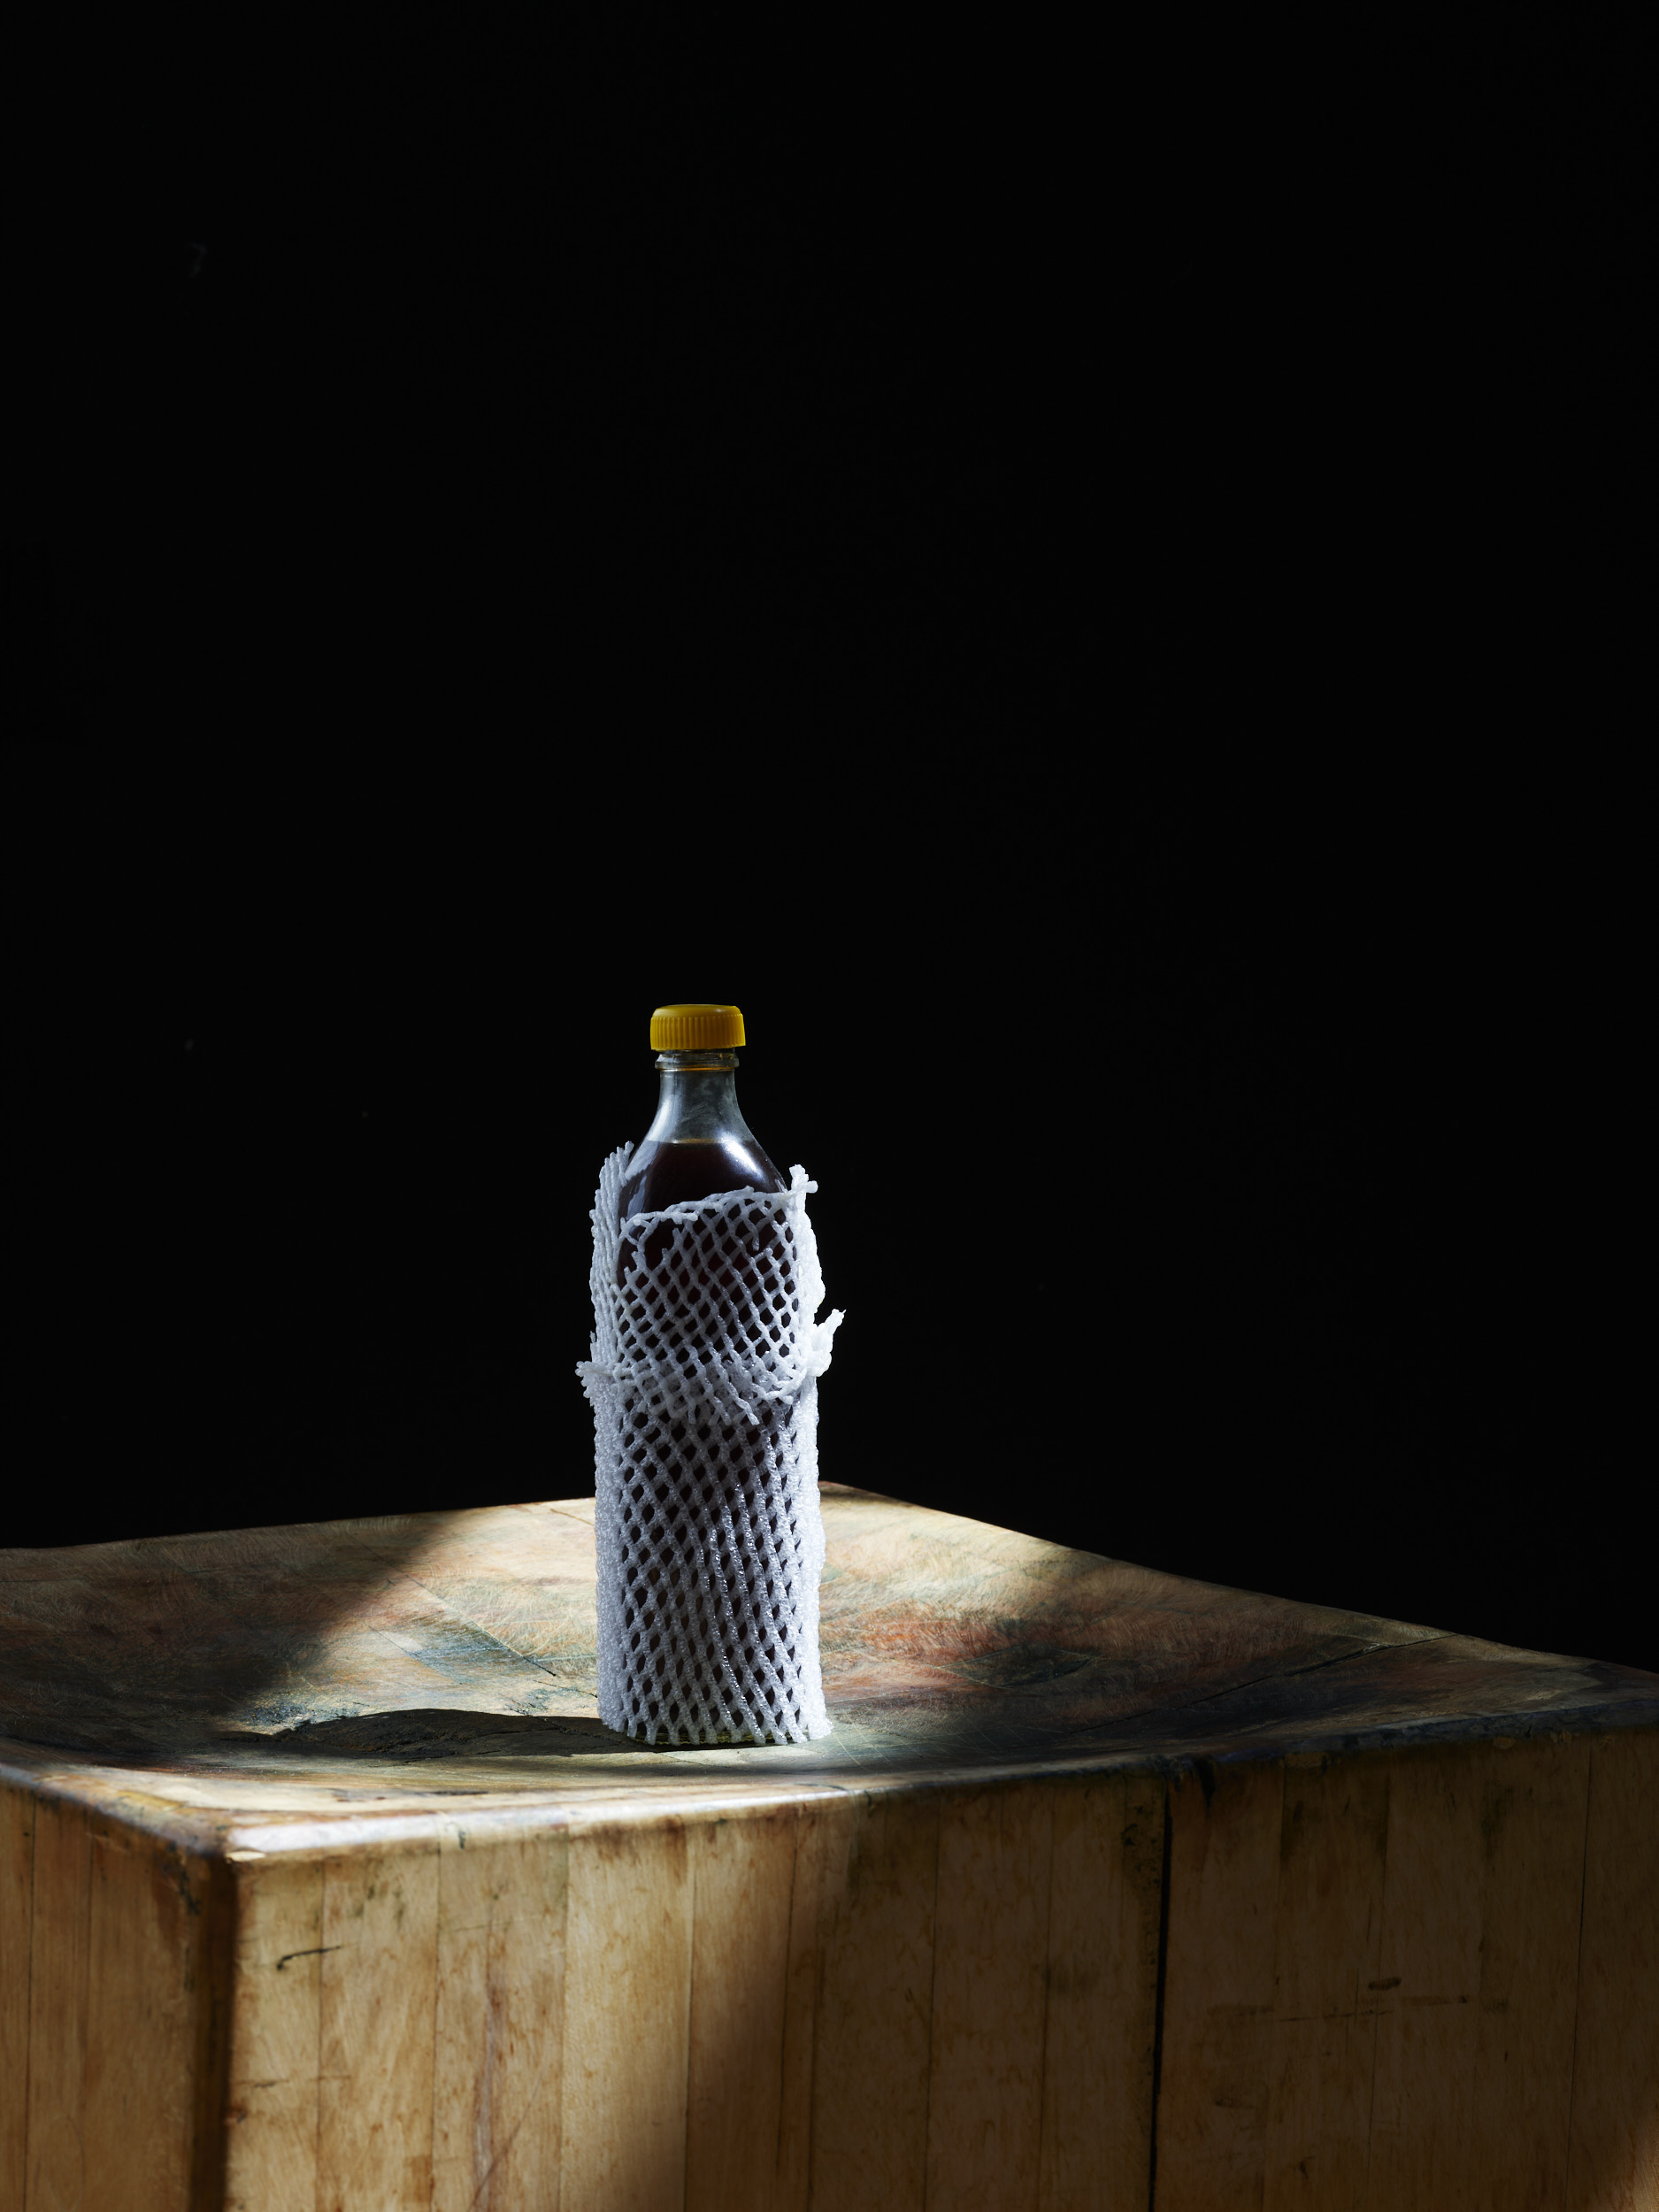 Quarantine_StillLife_0228